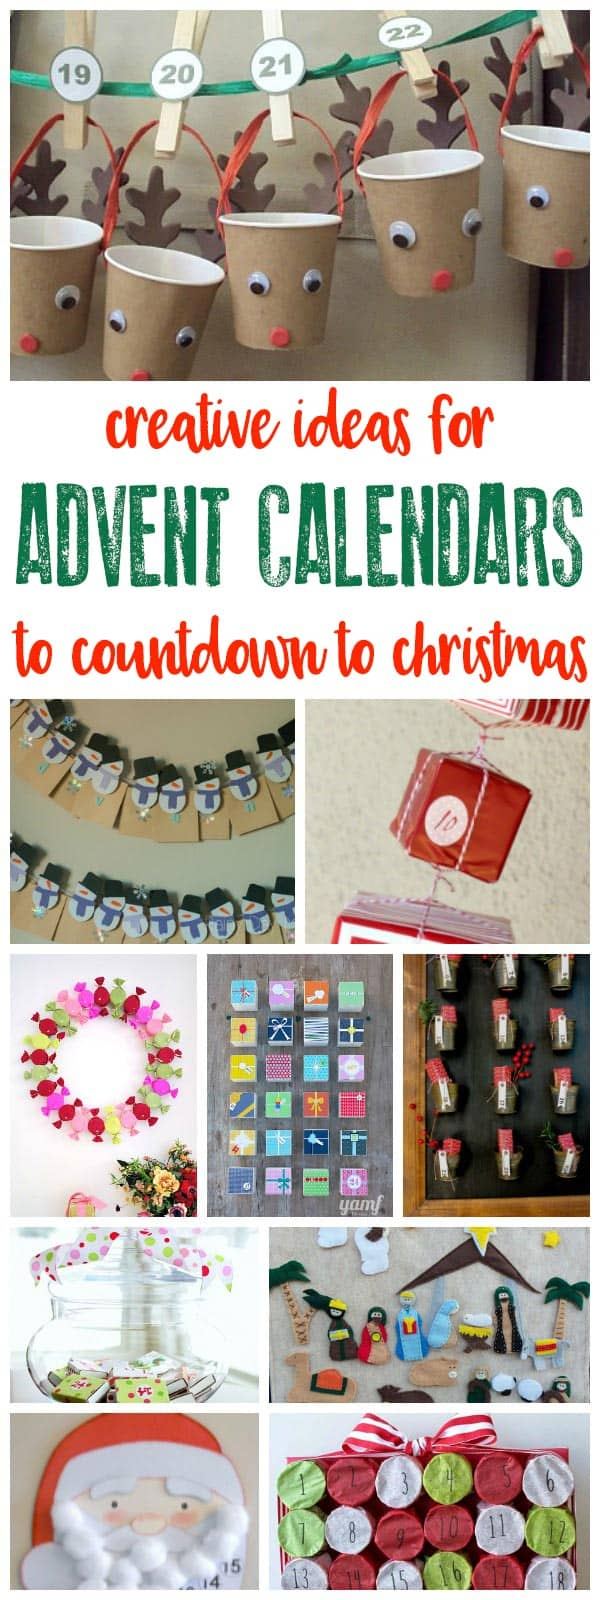 Advent Calendar Ideas Uk : Creative ideas for diy advent calendars to countdown